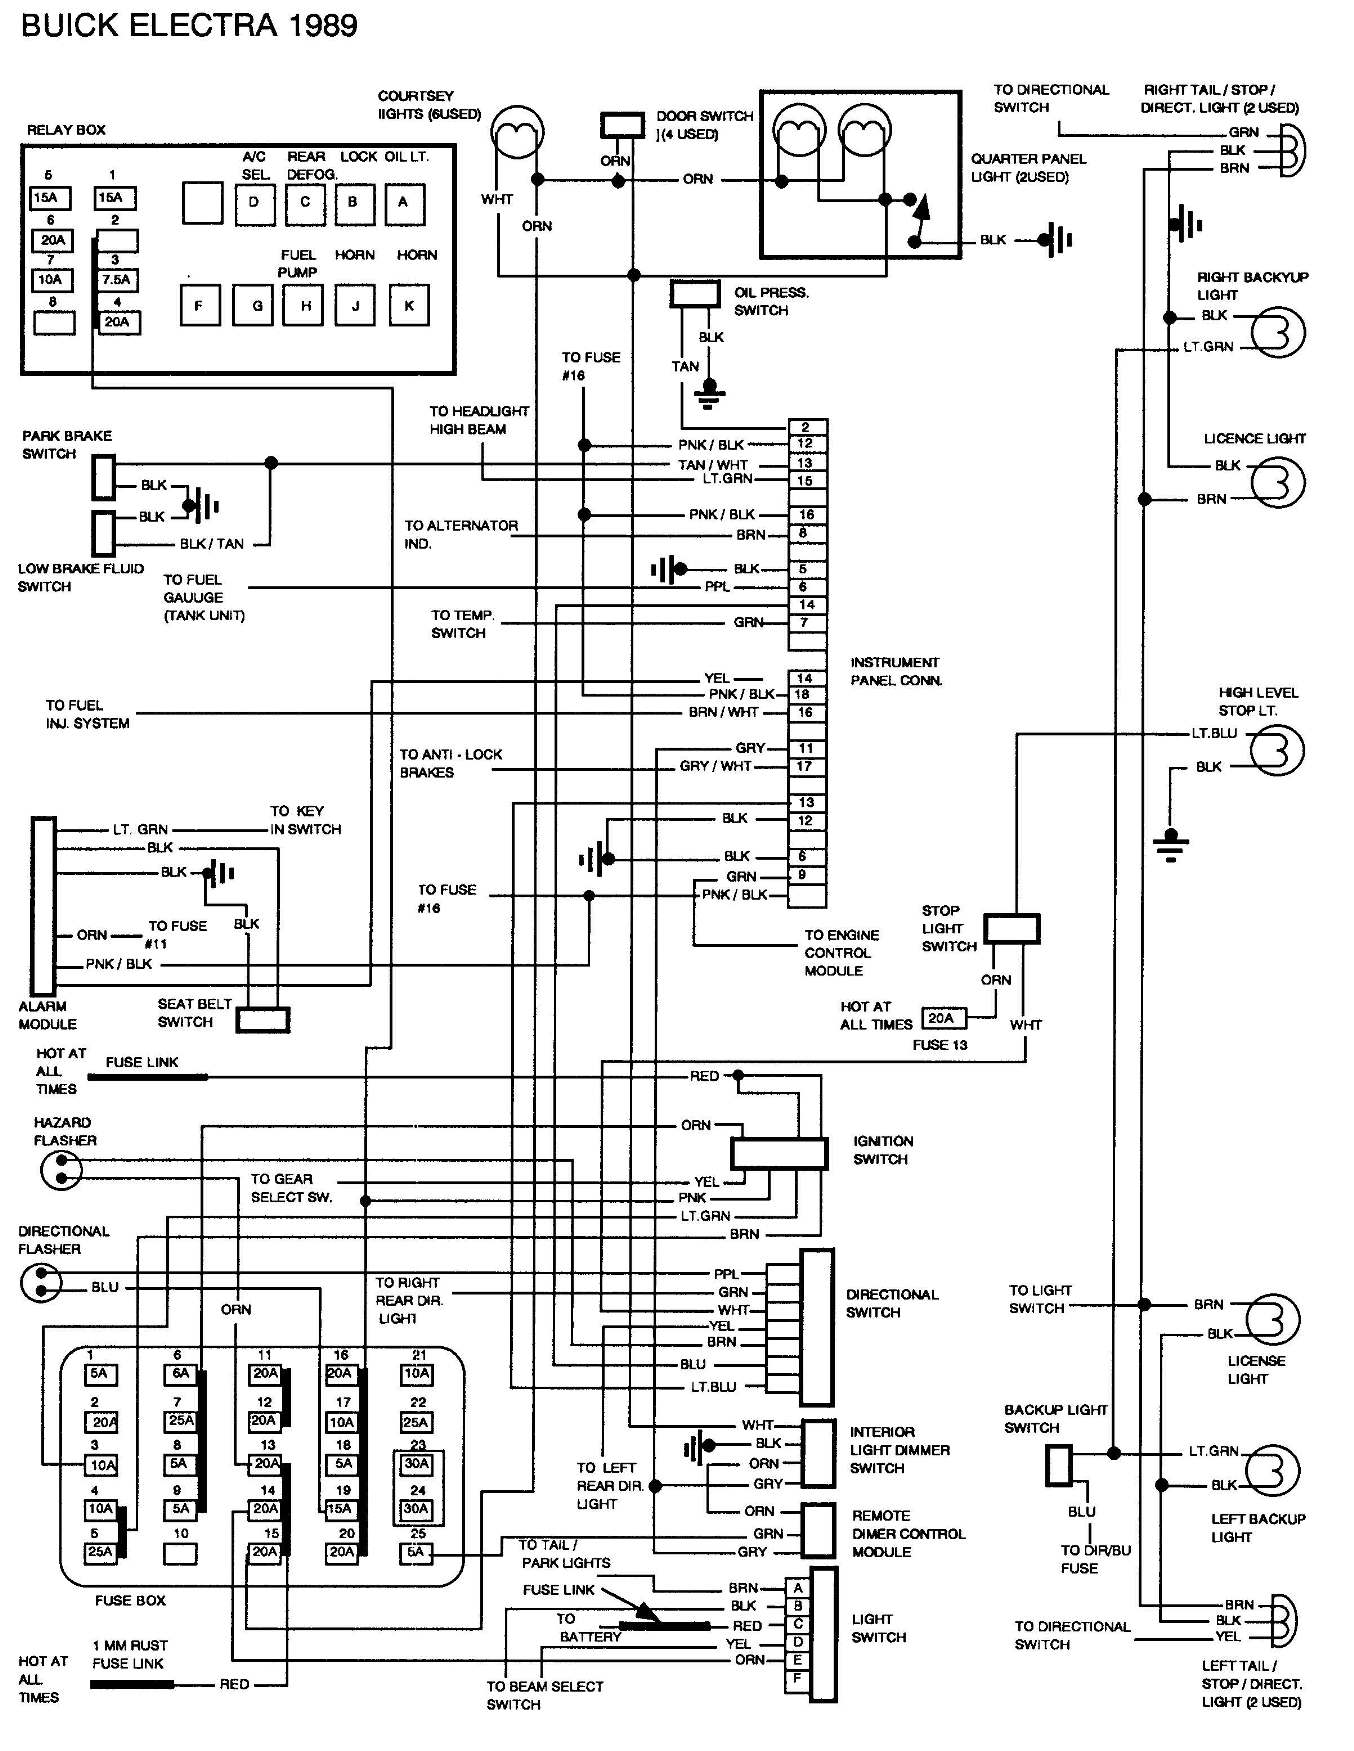 2005 gmc canyon wiring diagram full version hd quality wiring diagram -  tybo.as4a.fr  as4a.fr